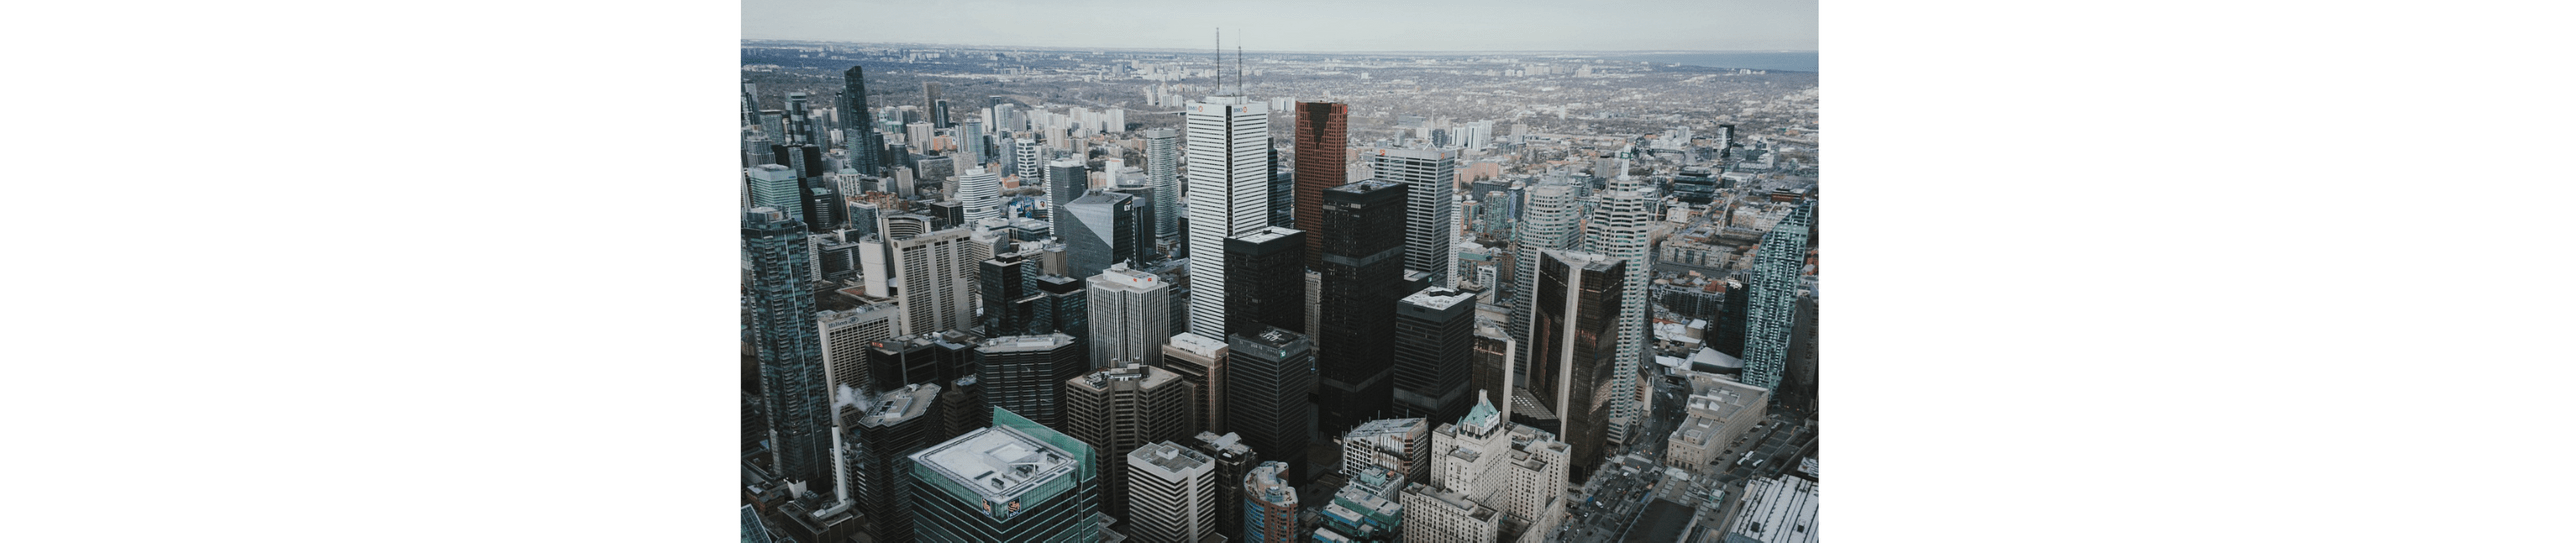 Image of buildings in Toronto